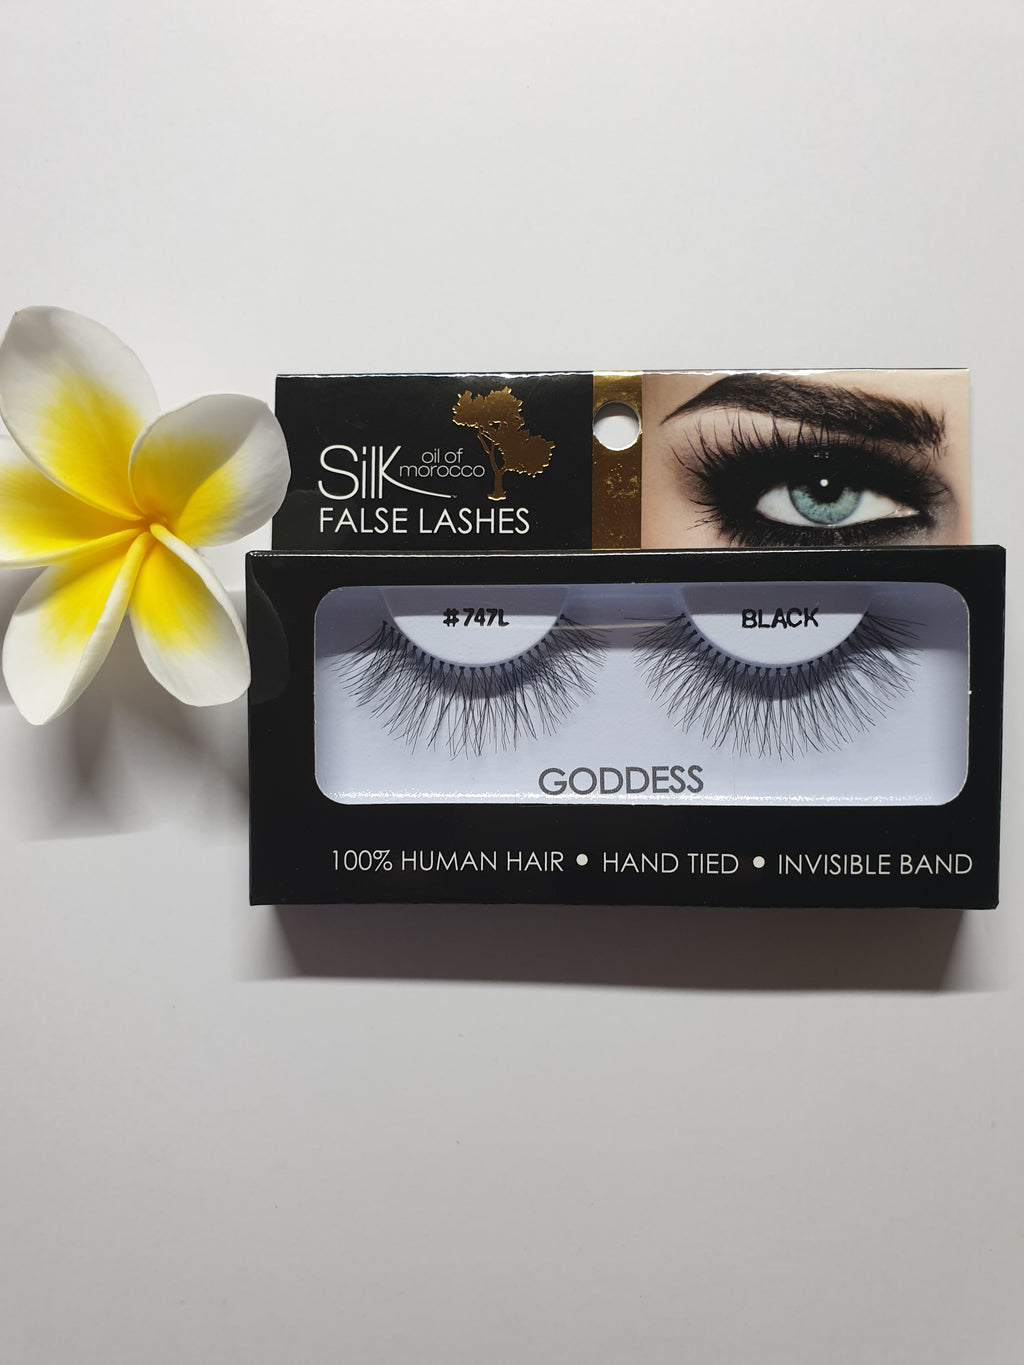 Silk Oil of Morocco Vegan Strip False Lashes Goddess